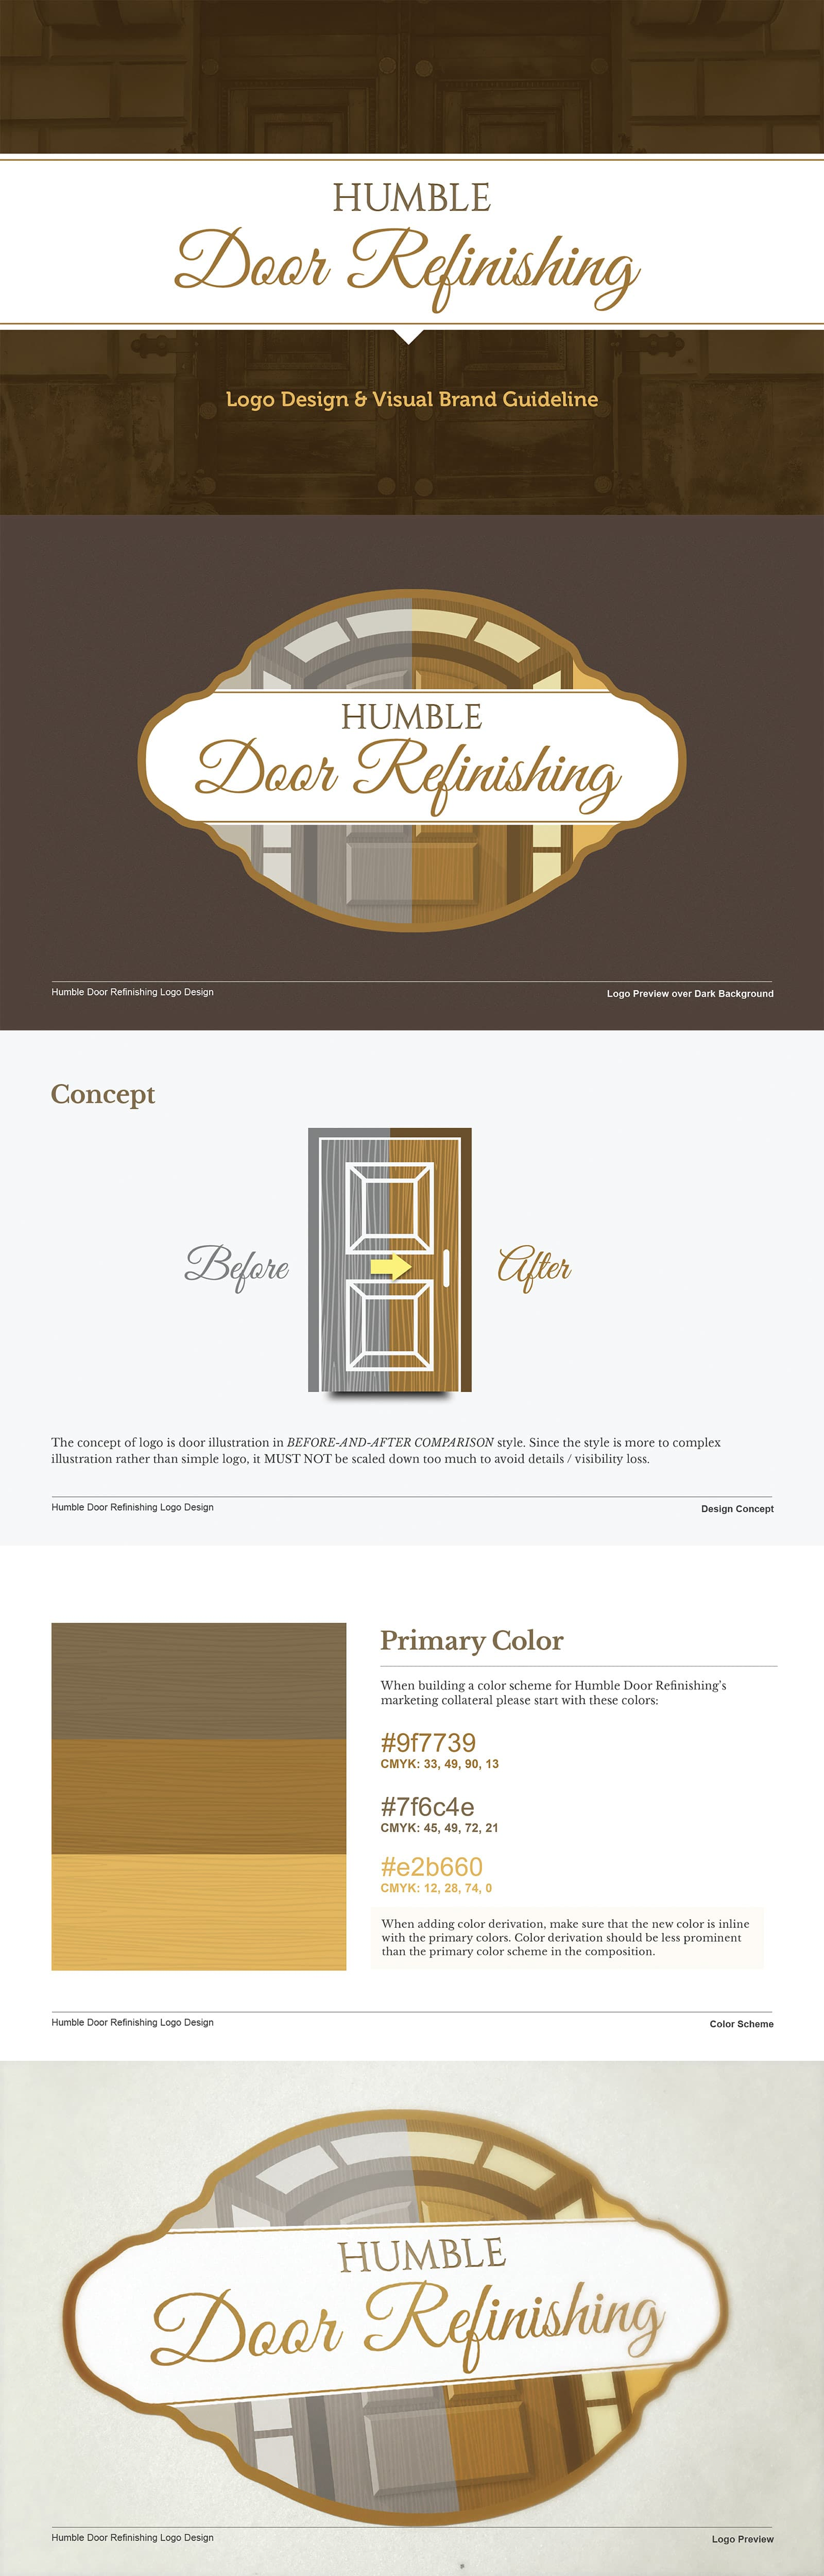 branding-humble_door_refinishing